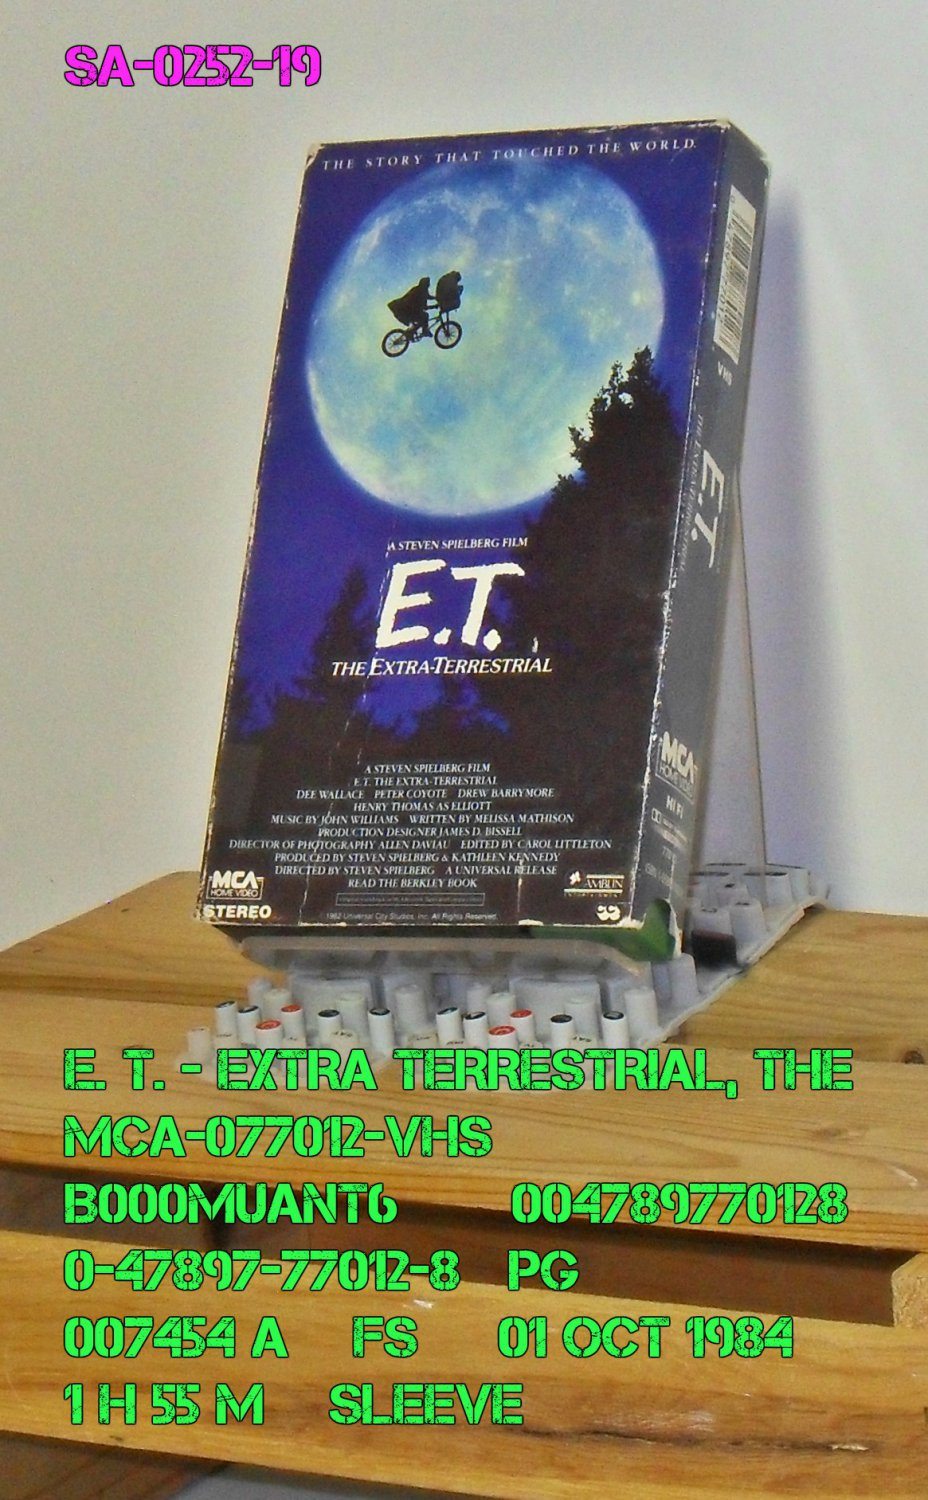 VHS - E. T. - EXTRA-TERRESTRIAL, THE